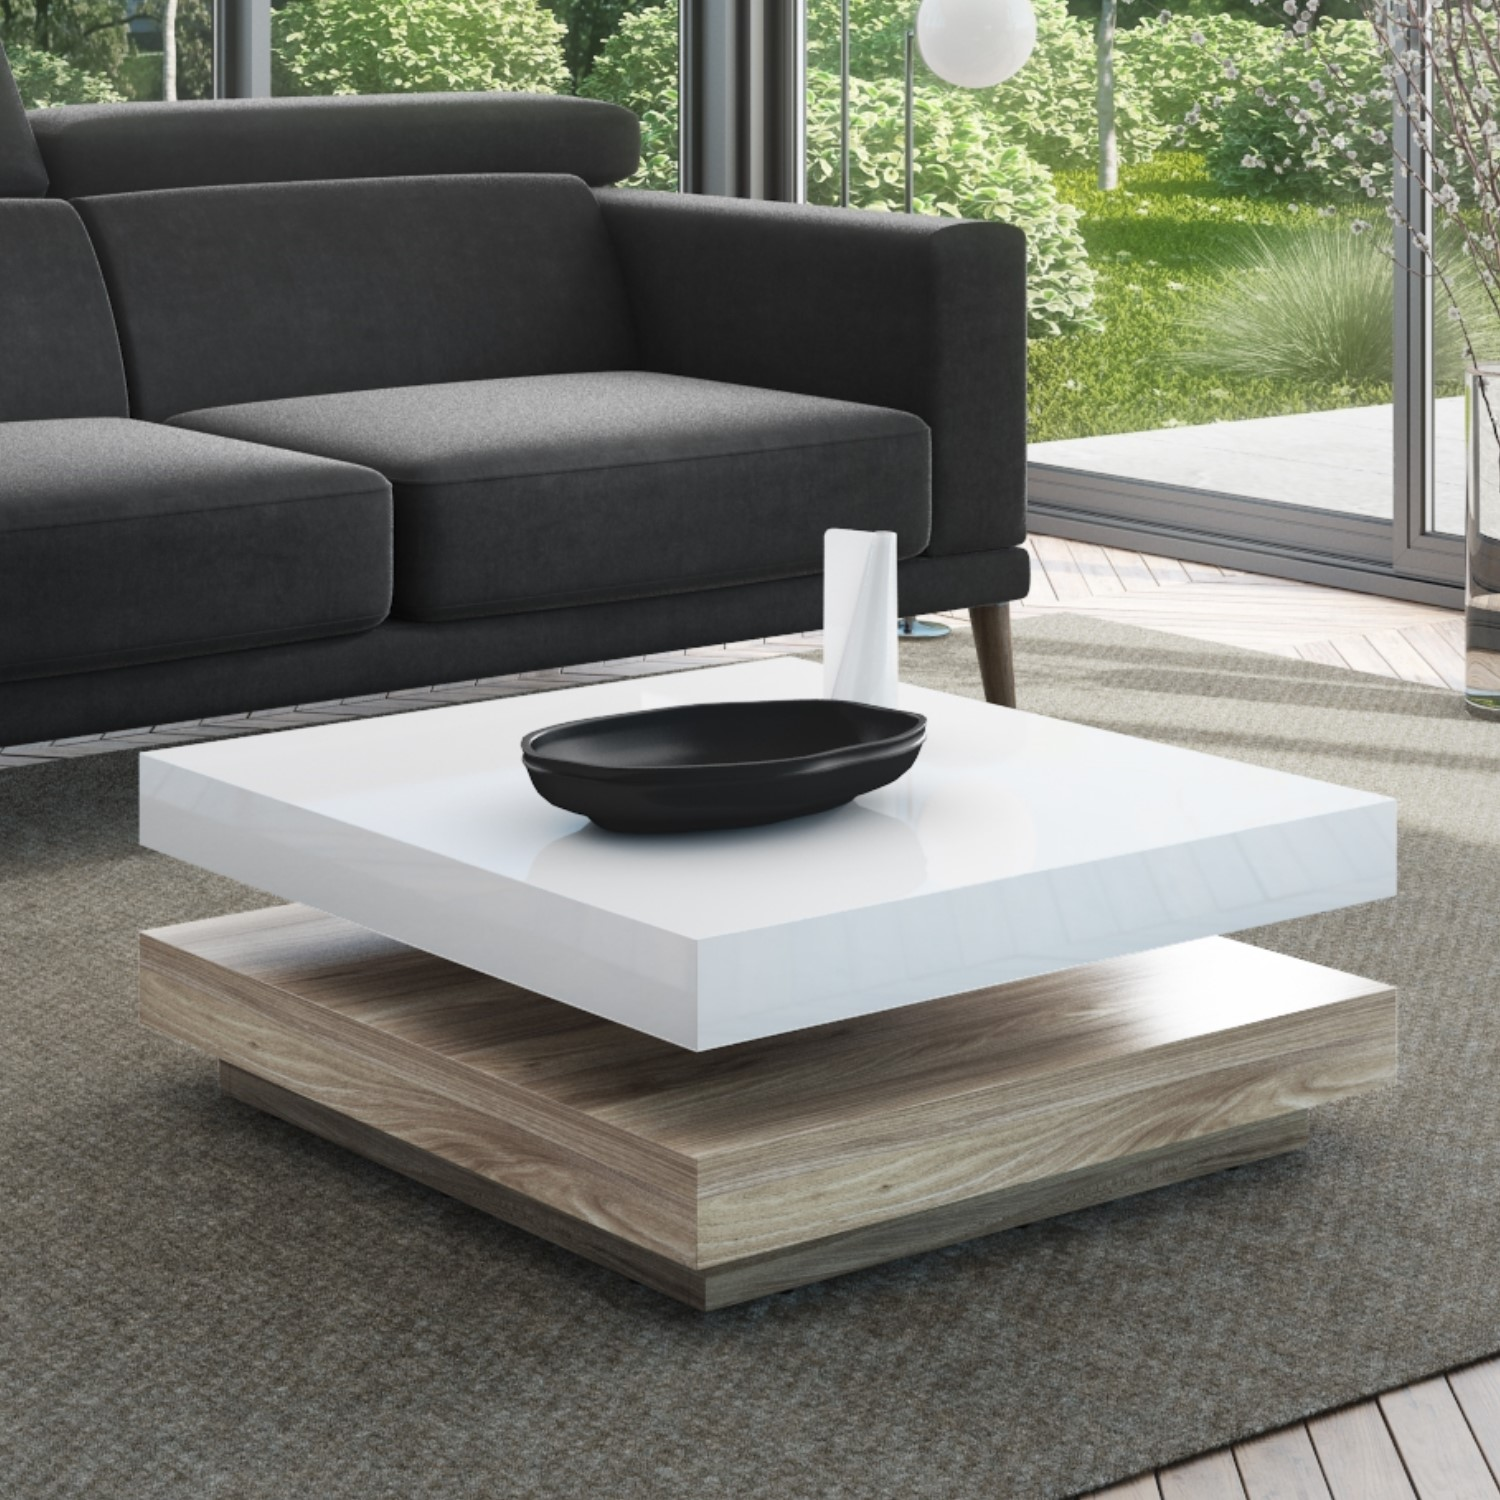 Square Coffee Table In White High Gloss Light Wood Effect